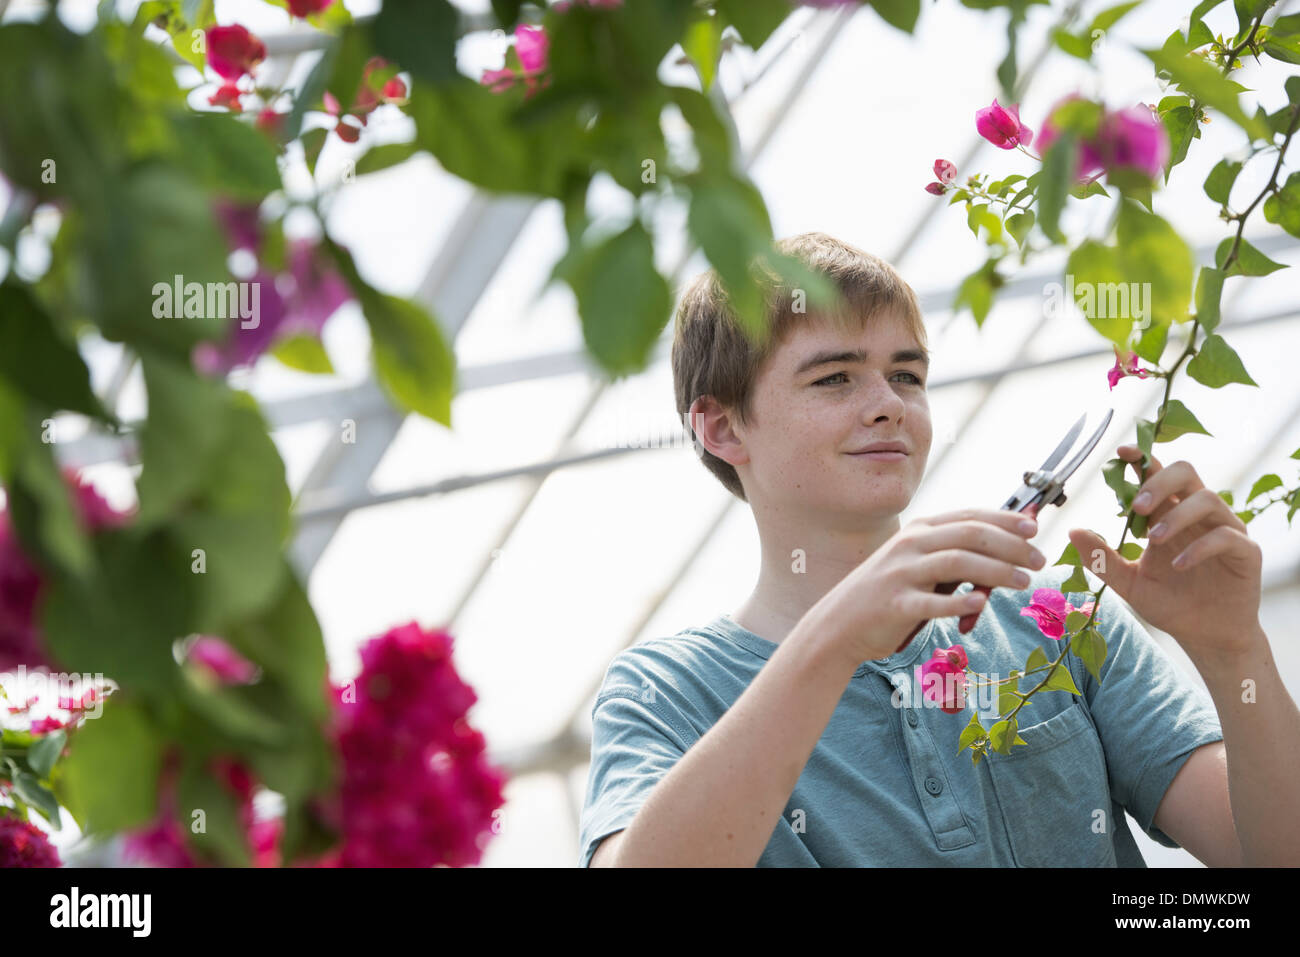 A young boy working in an organic nursery greenhouse. - Stock Image